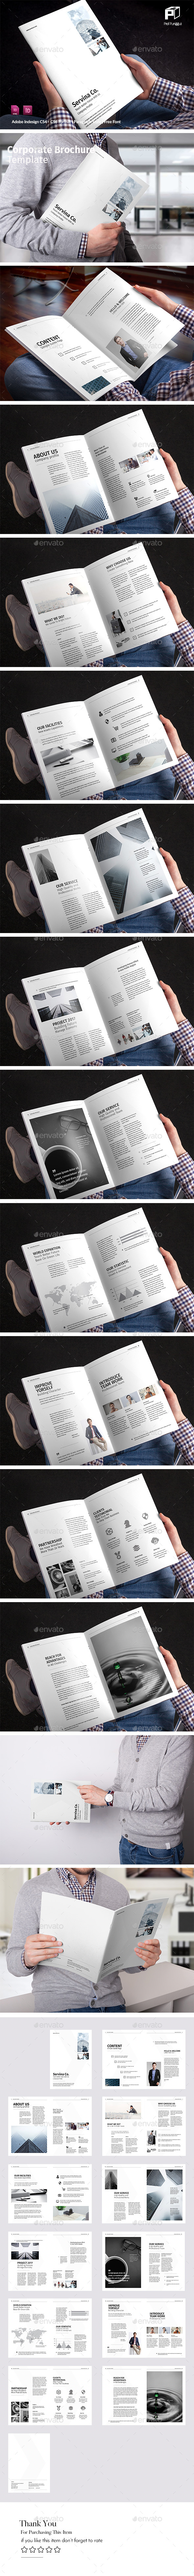 Corporate Brochure Vol.10 - Corporate Brochures